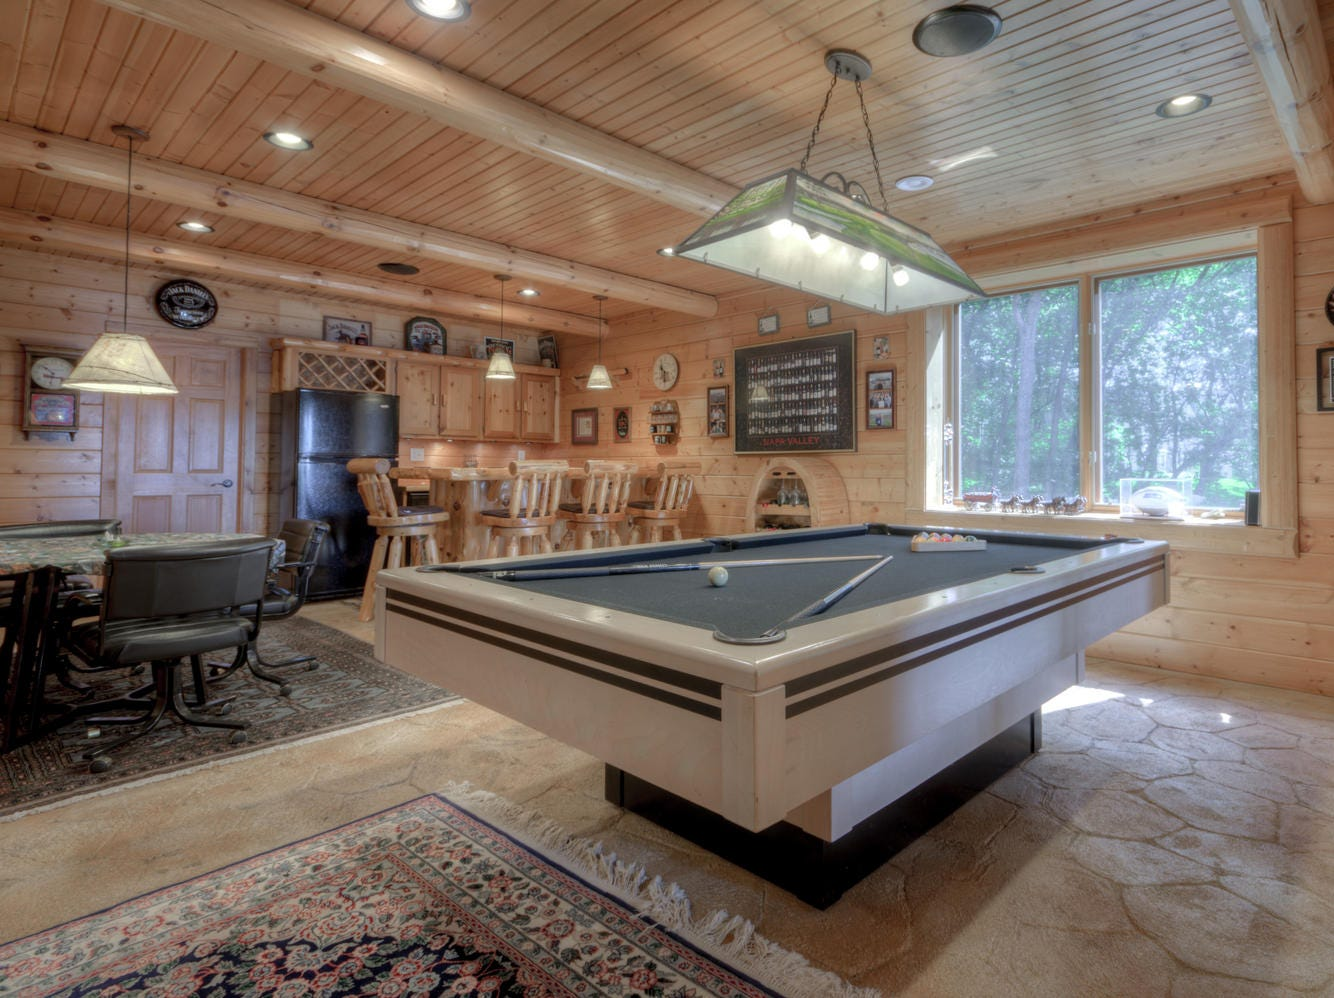 The lower level boasts a large recreational/billiards room as well as a wet bar for entertaining guests lakeside.